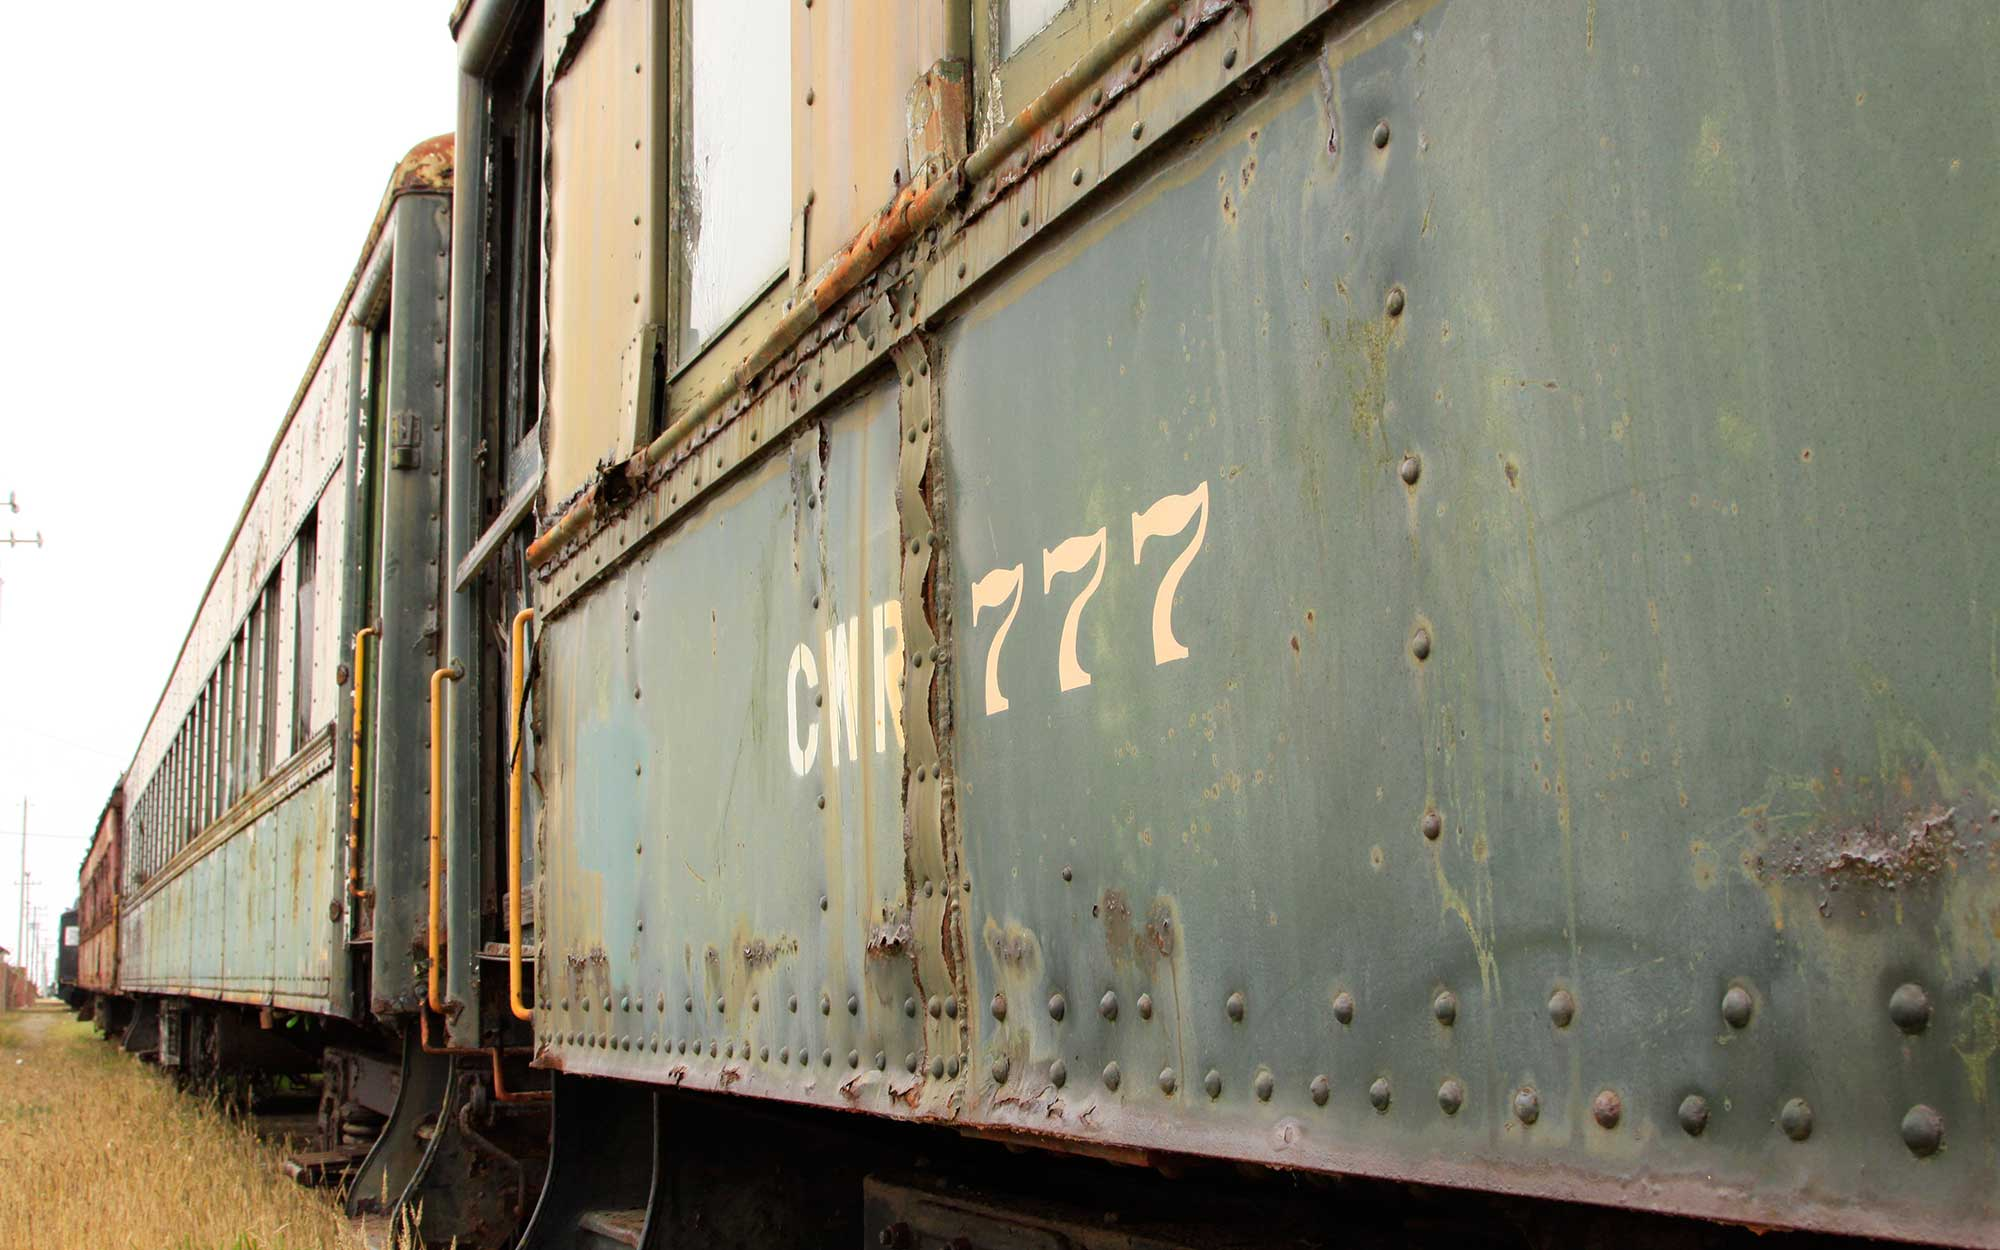 Abandoned Skunk Train, Ft. Bragg, California, abandoned places